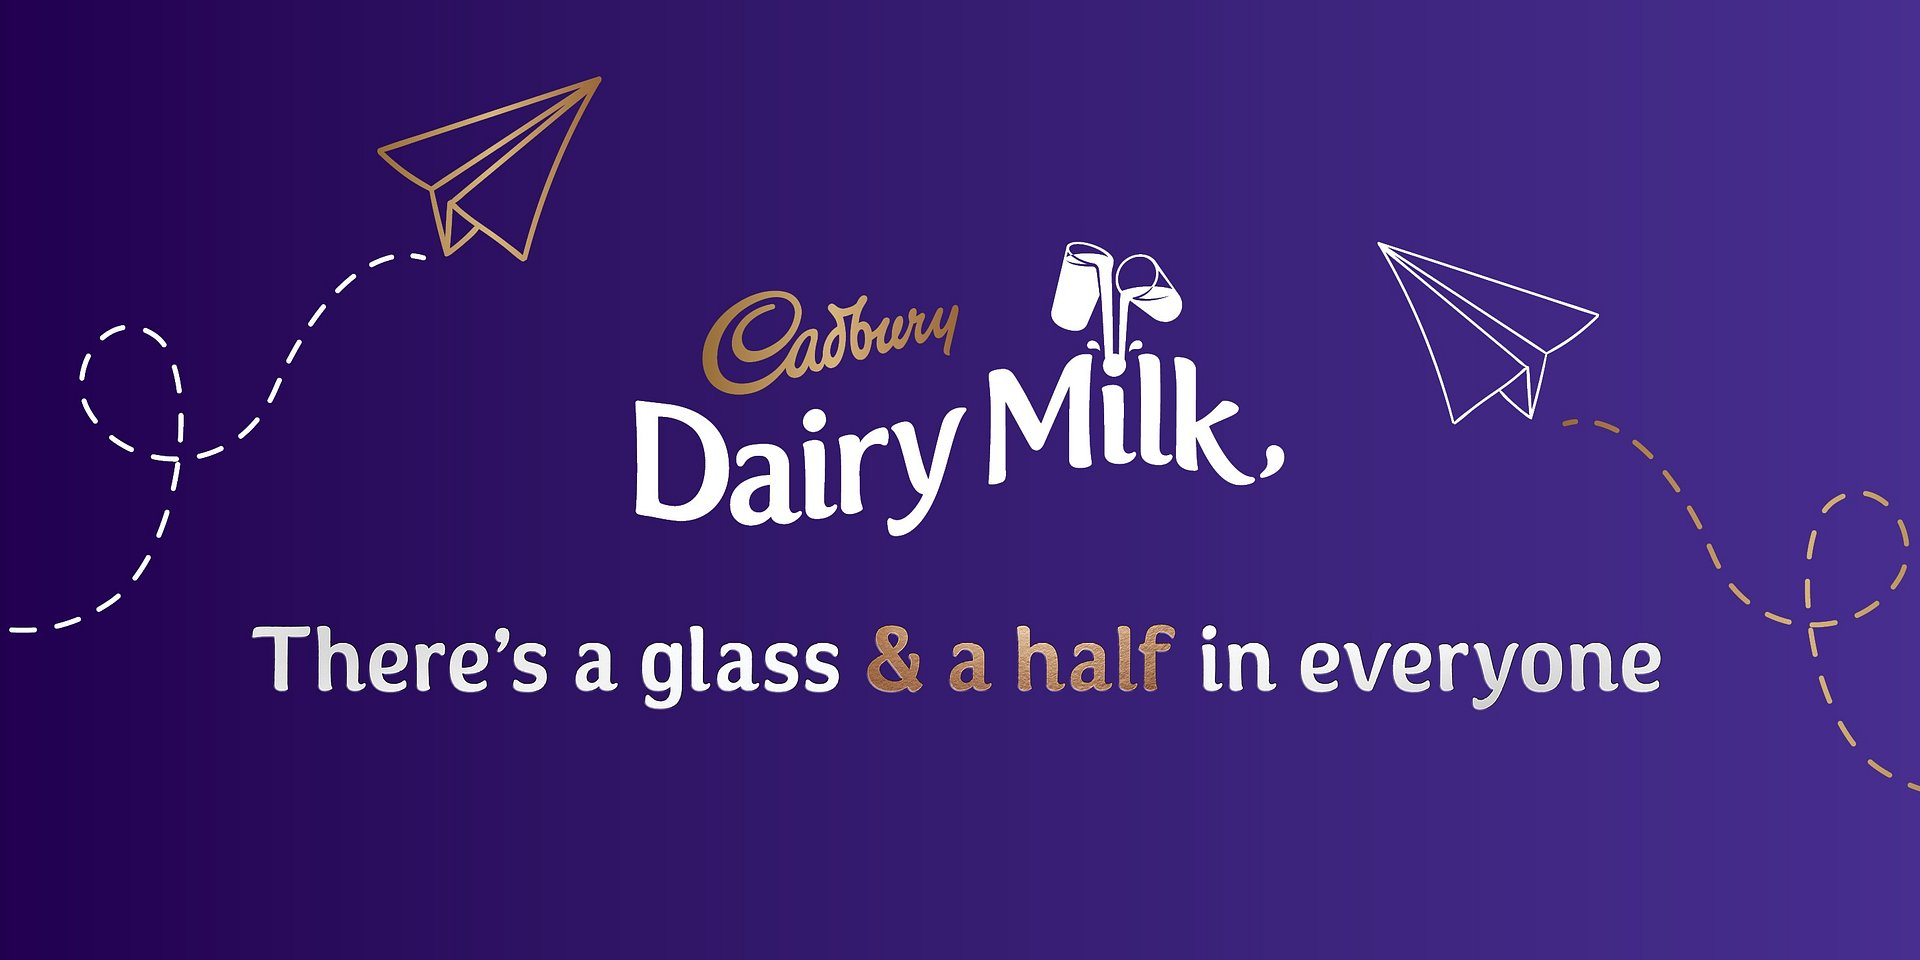 Cadbury Dairy Milk Gives South Africa 3.7 Million Reasons to Care